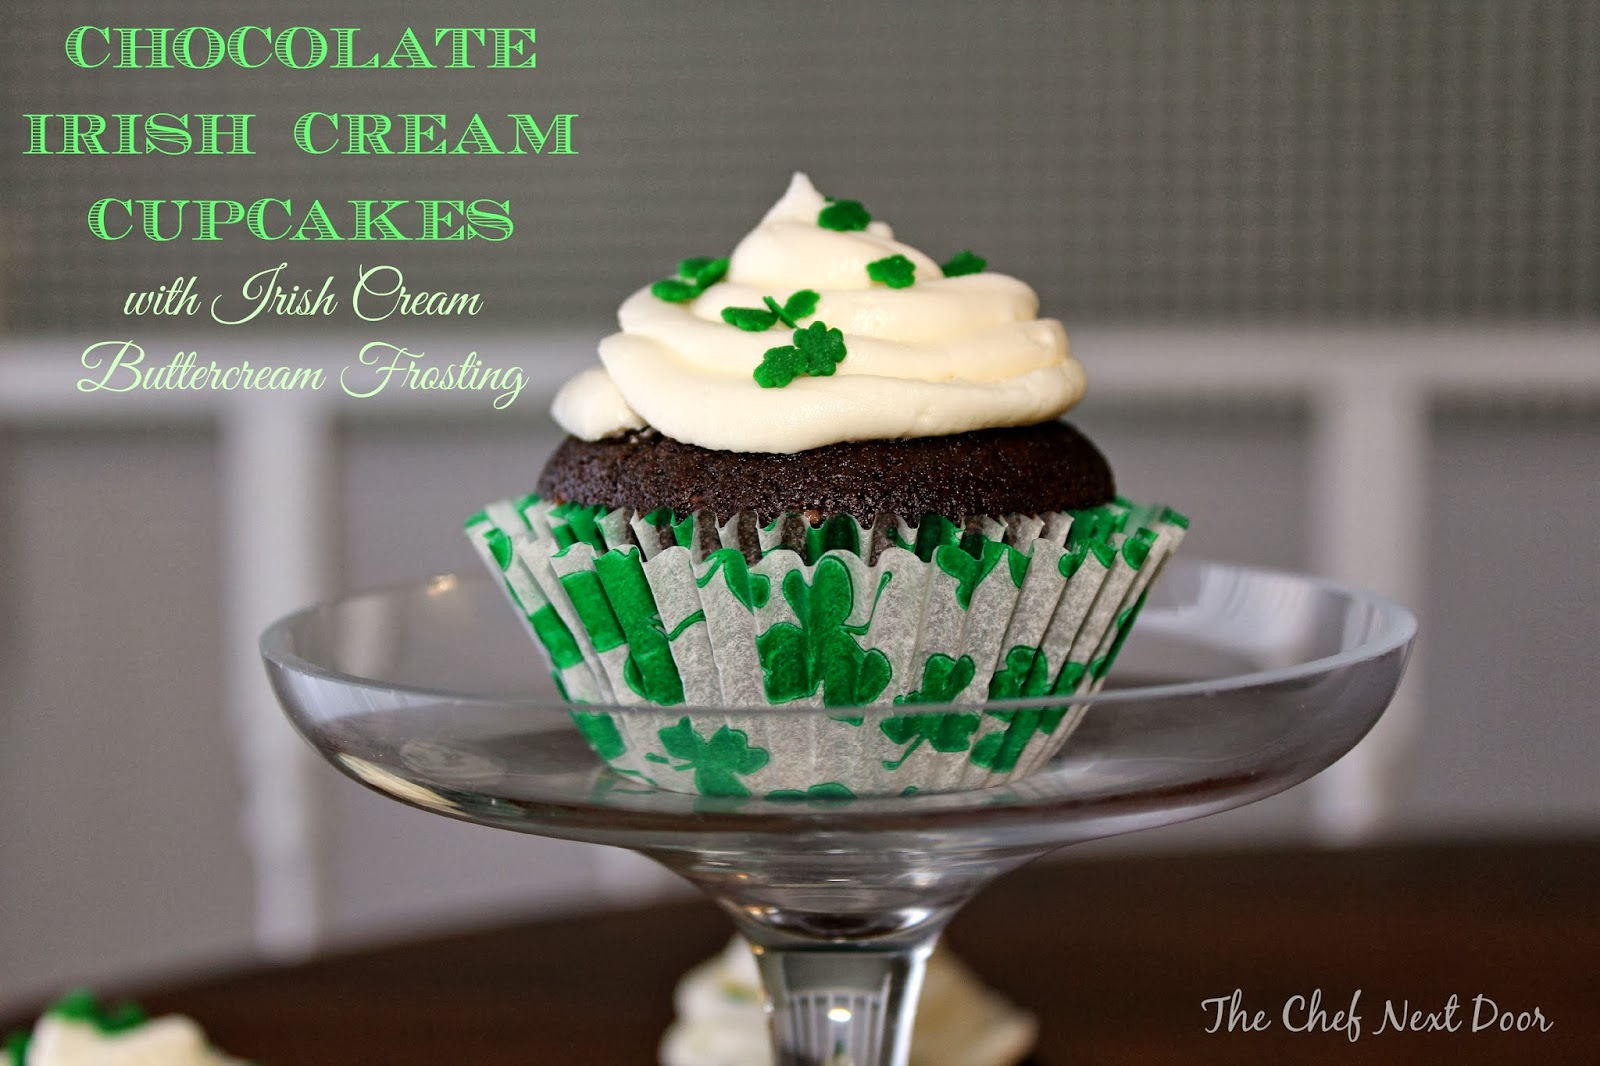 irish cream cupcakes_title